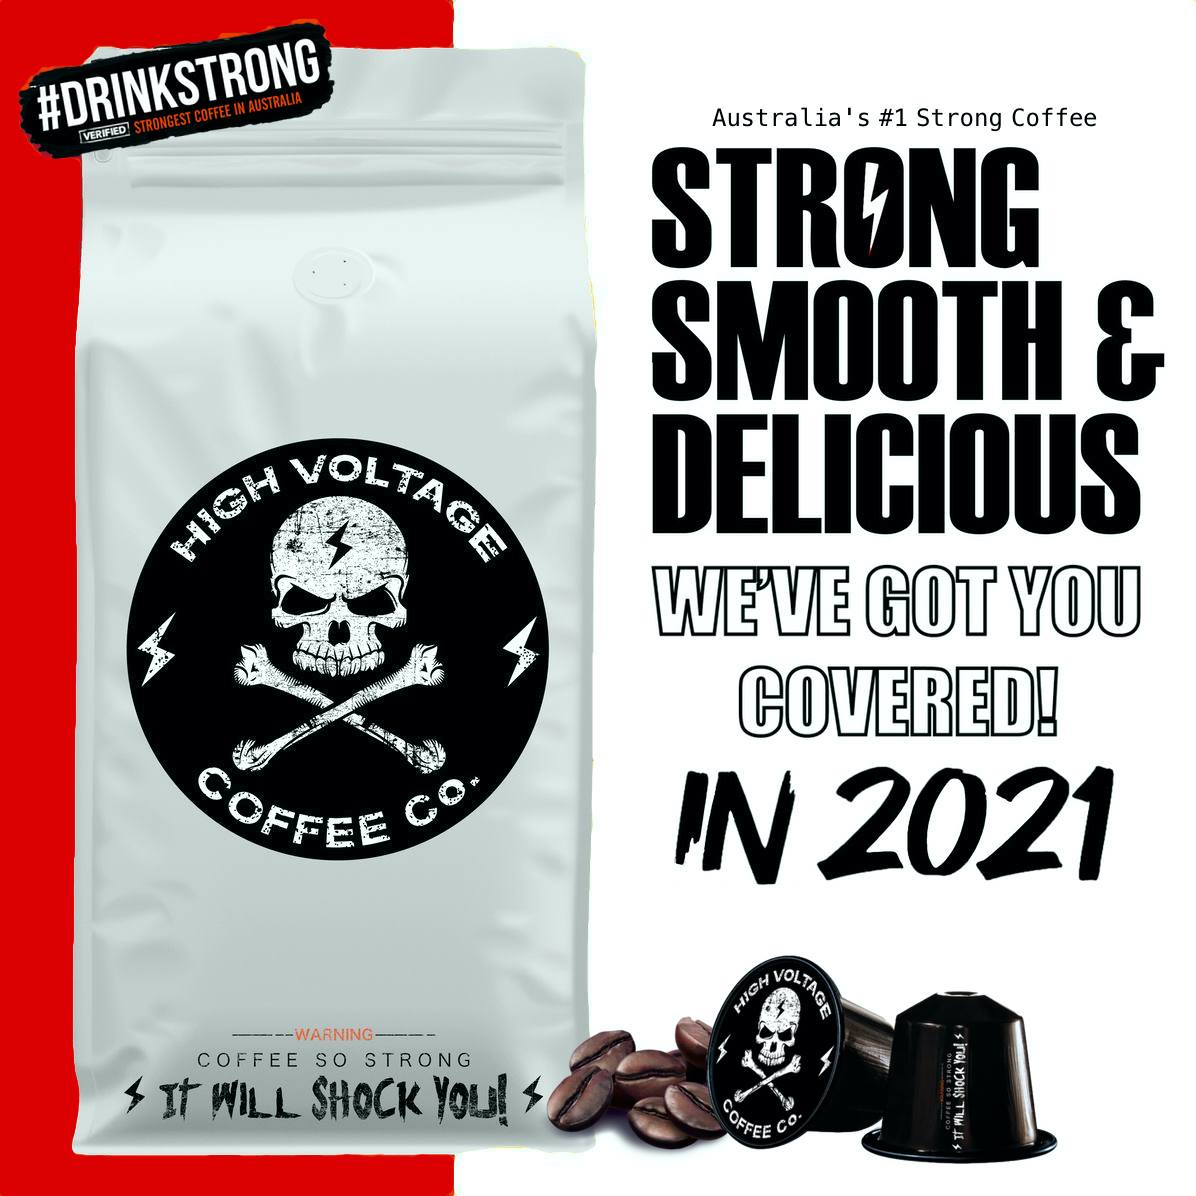 Now that the celebrations are over, High Voltage Coffee Co is here to help you get through 2021 the right way! ☠ WE'VE GOT YOU COVERED IN 2021 with Australia's #1 Strong Coffee! #HappyNewYear2021 #coffee #AustraliaDay  #HighVoltageCoffee #love #NewYear #coffeetime #coffeebreak